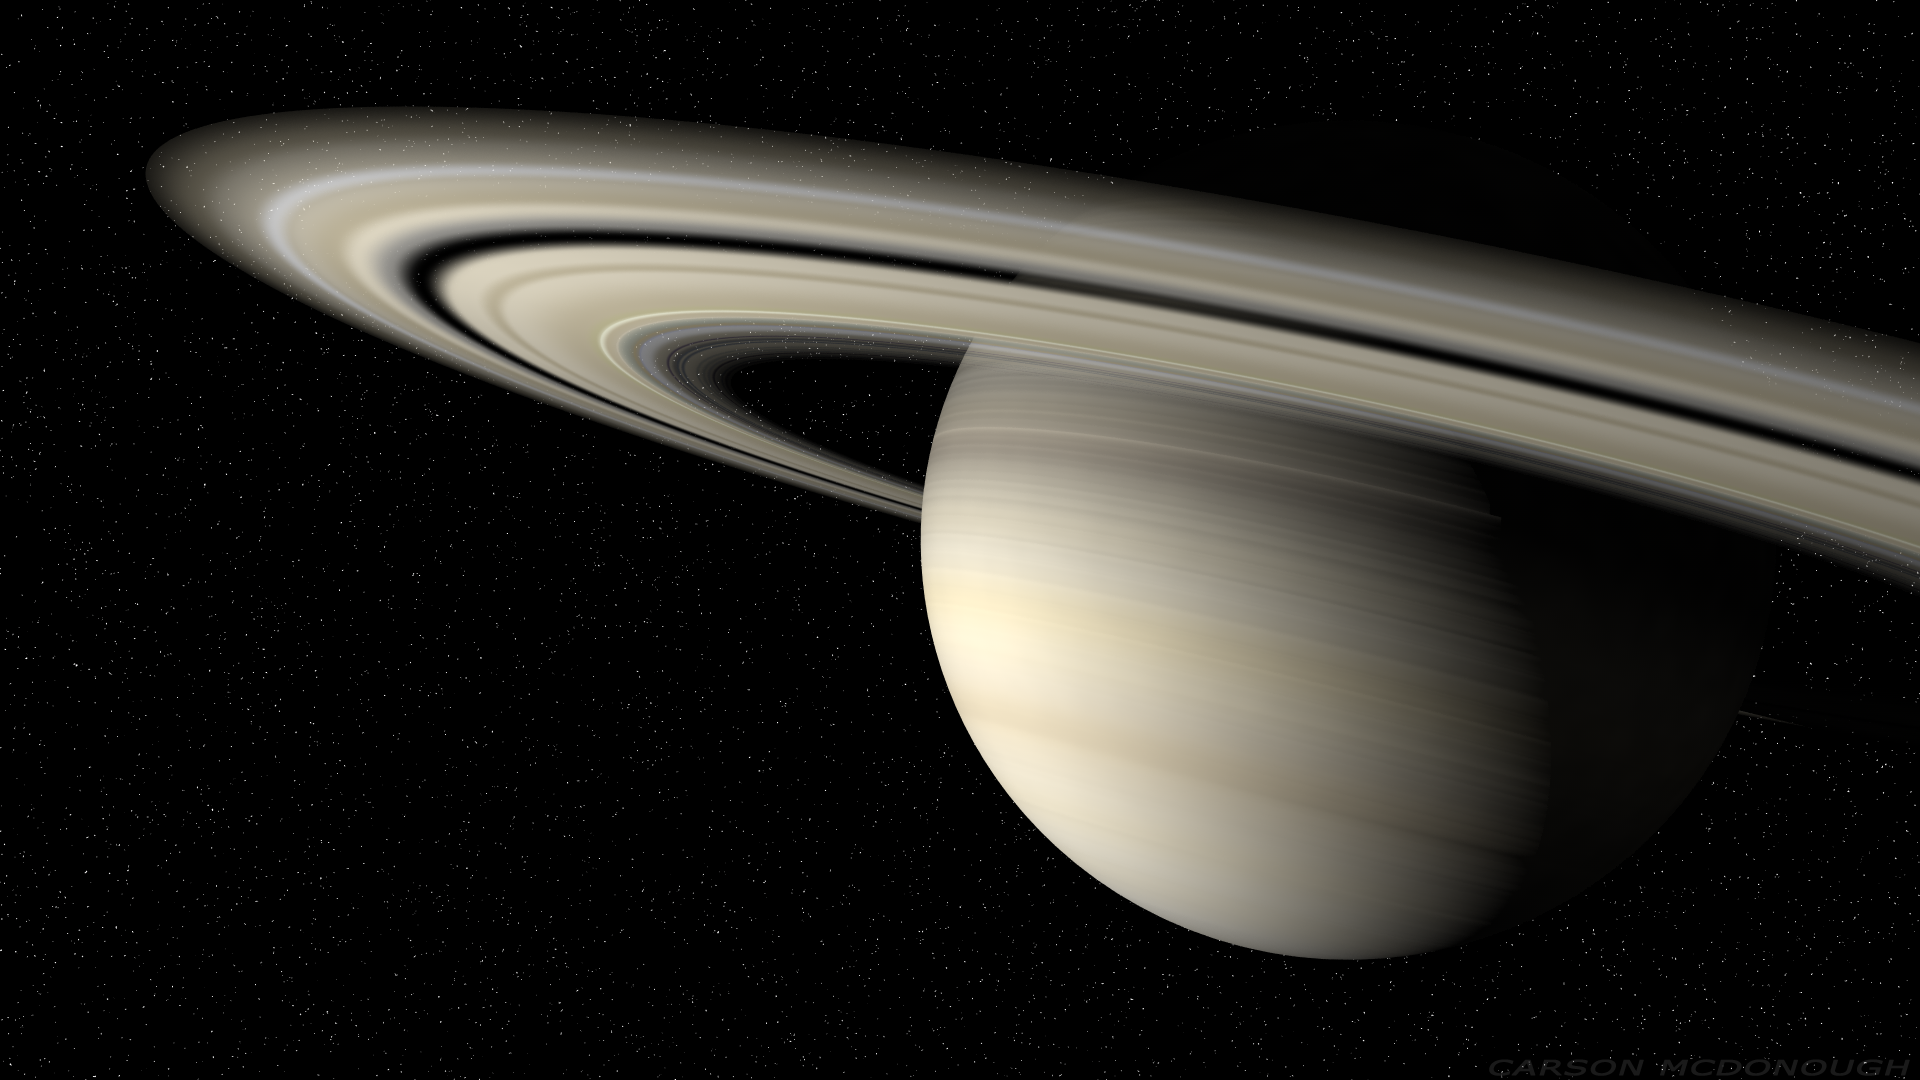 Saturn Download This Wallpaper 1920x1080 The Paper Wall